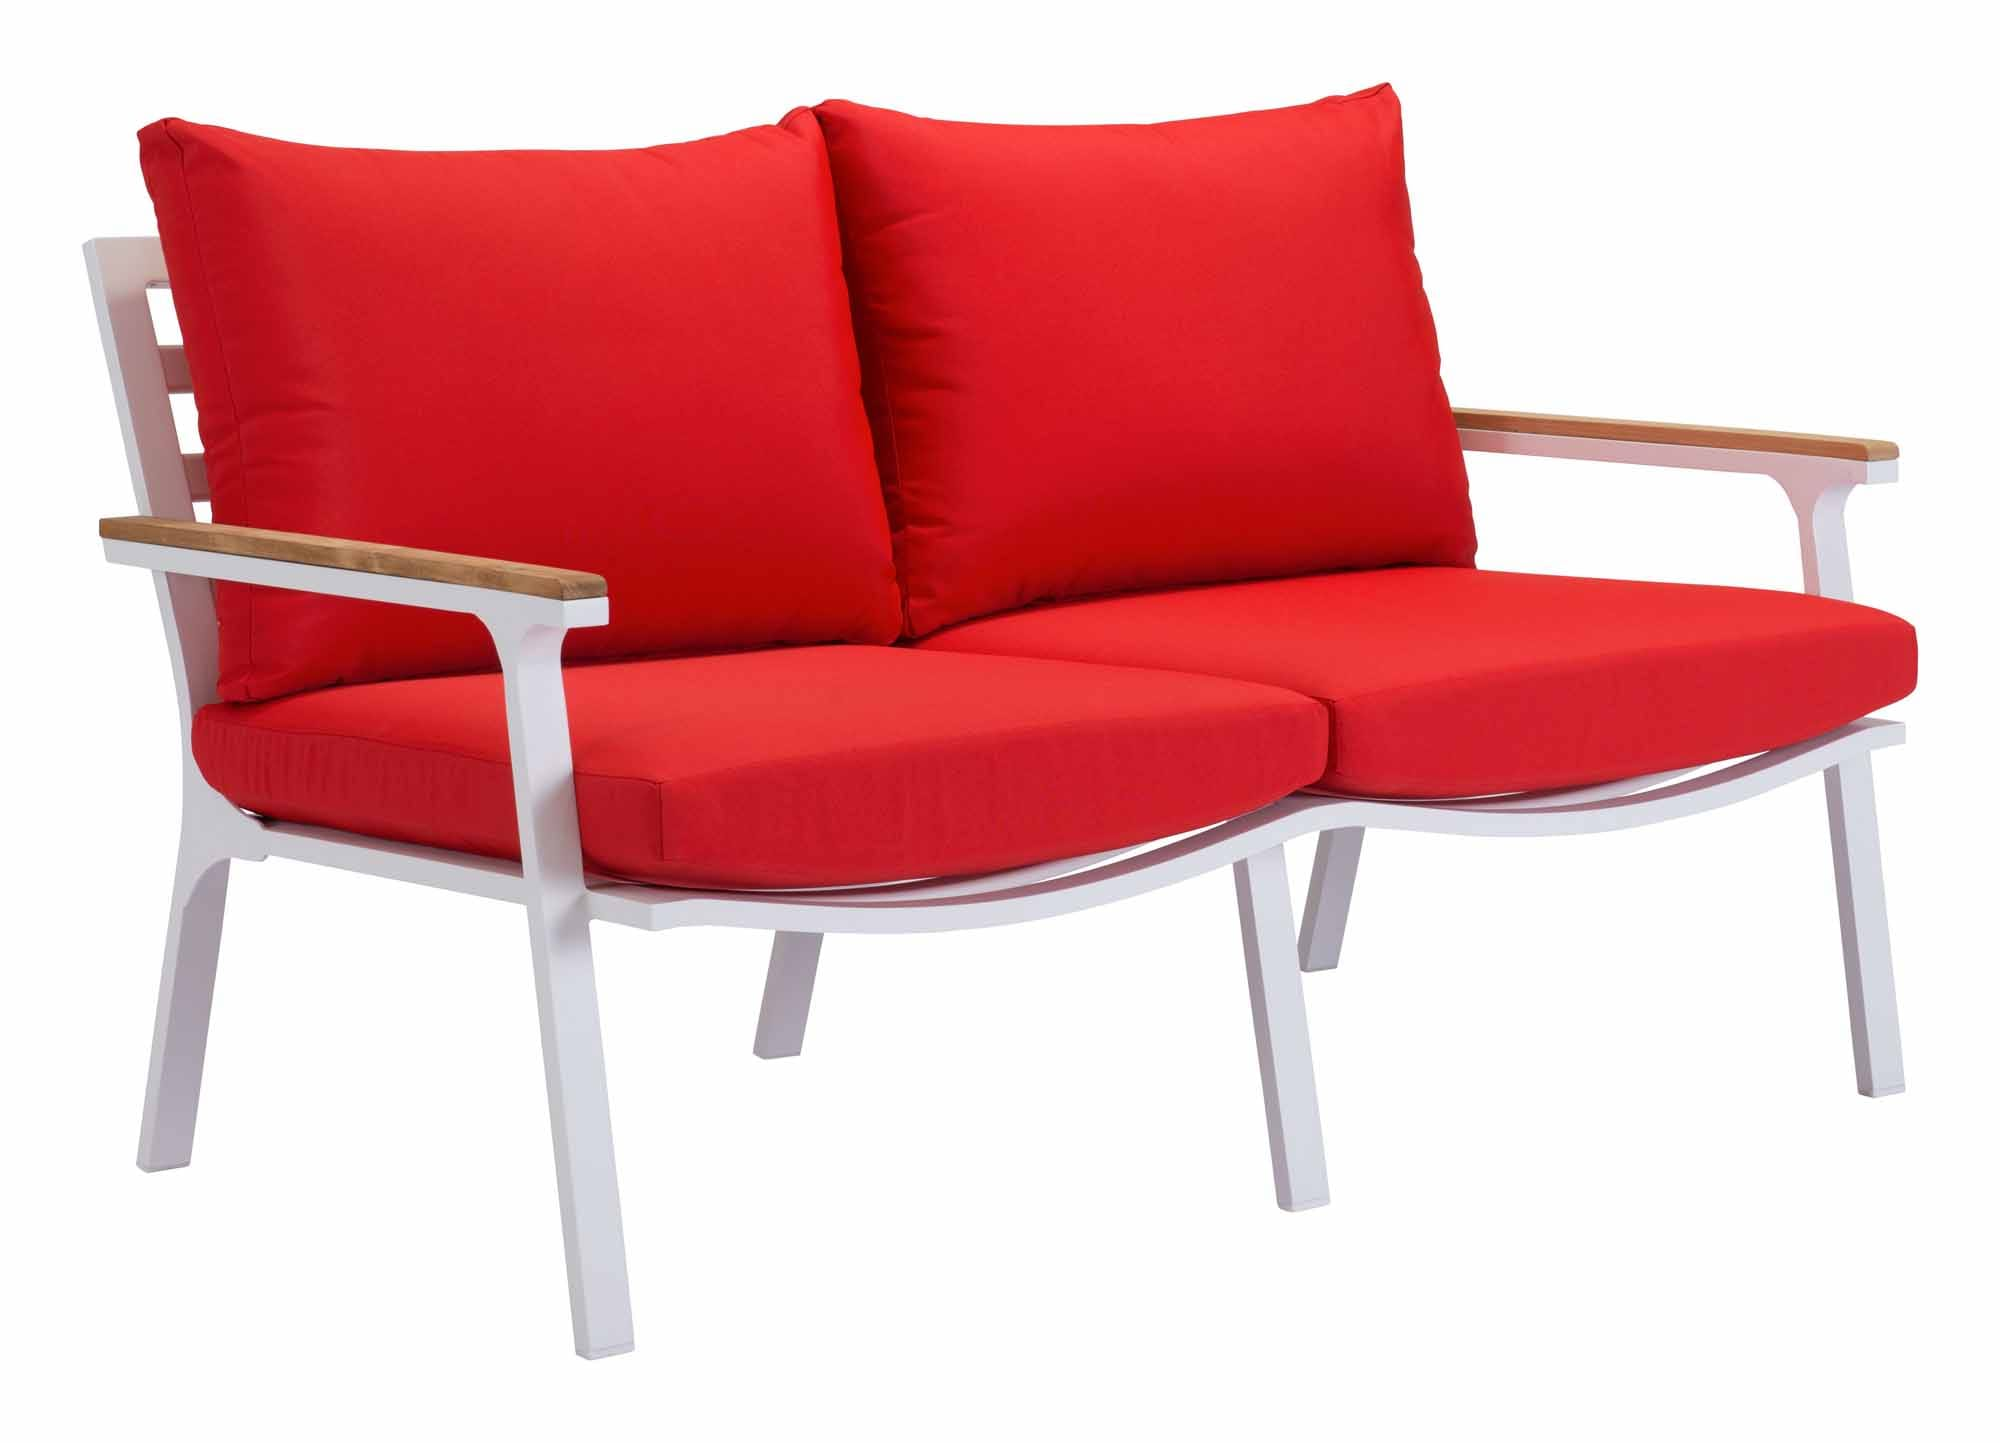 Phenomenal Maya Beach Sofa Red Natural White By Zuo Modern Andrewgaddart Wooden Chair Designs For Living Room Andrewgaddartcom